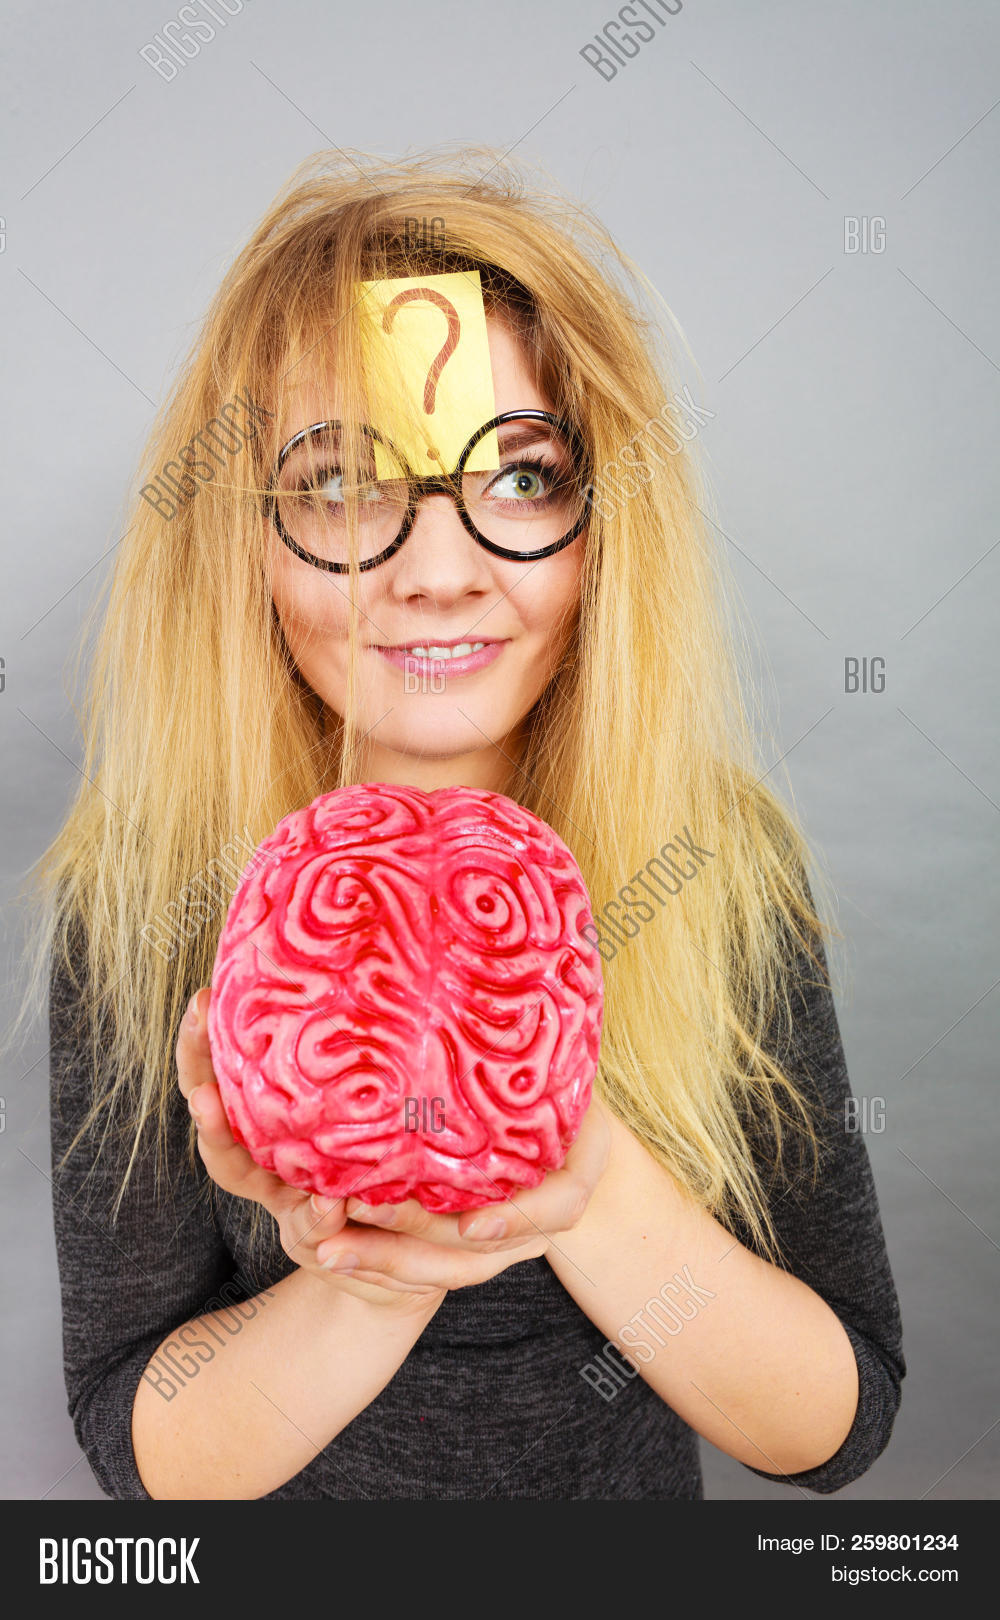 anatomy,brain,clever,concepts,crazy,education,expression,eyeglasses,female,finger,glasses,head,idea,intellect,intelligence,knowing,knowledge,mark,mind,pointing,question,scientist,smart,student,thinking,understanding,weird,woman,wondering